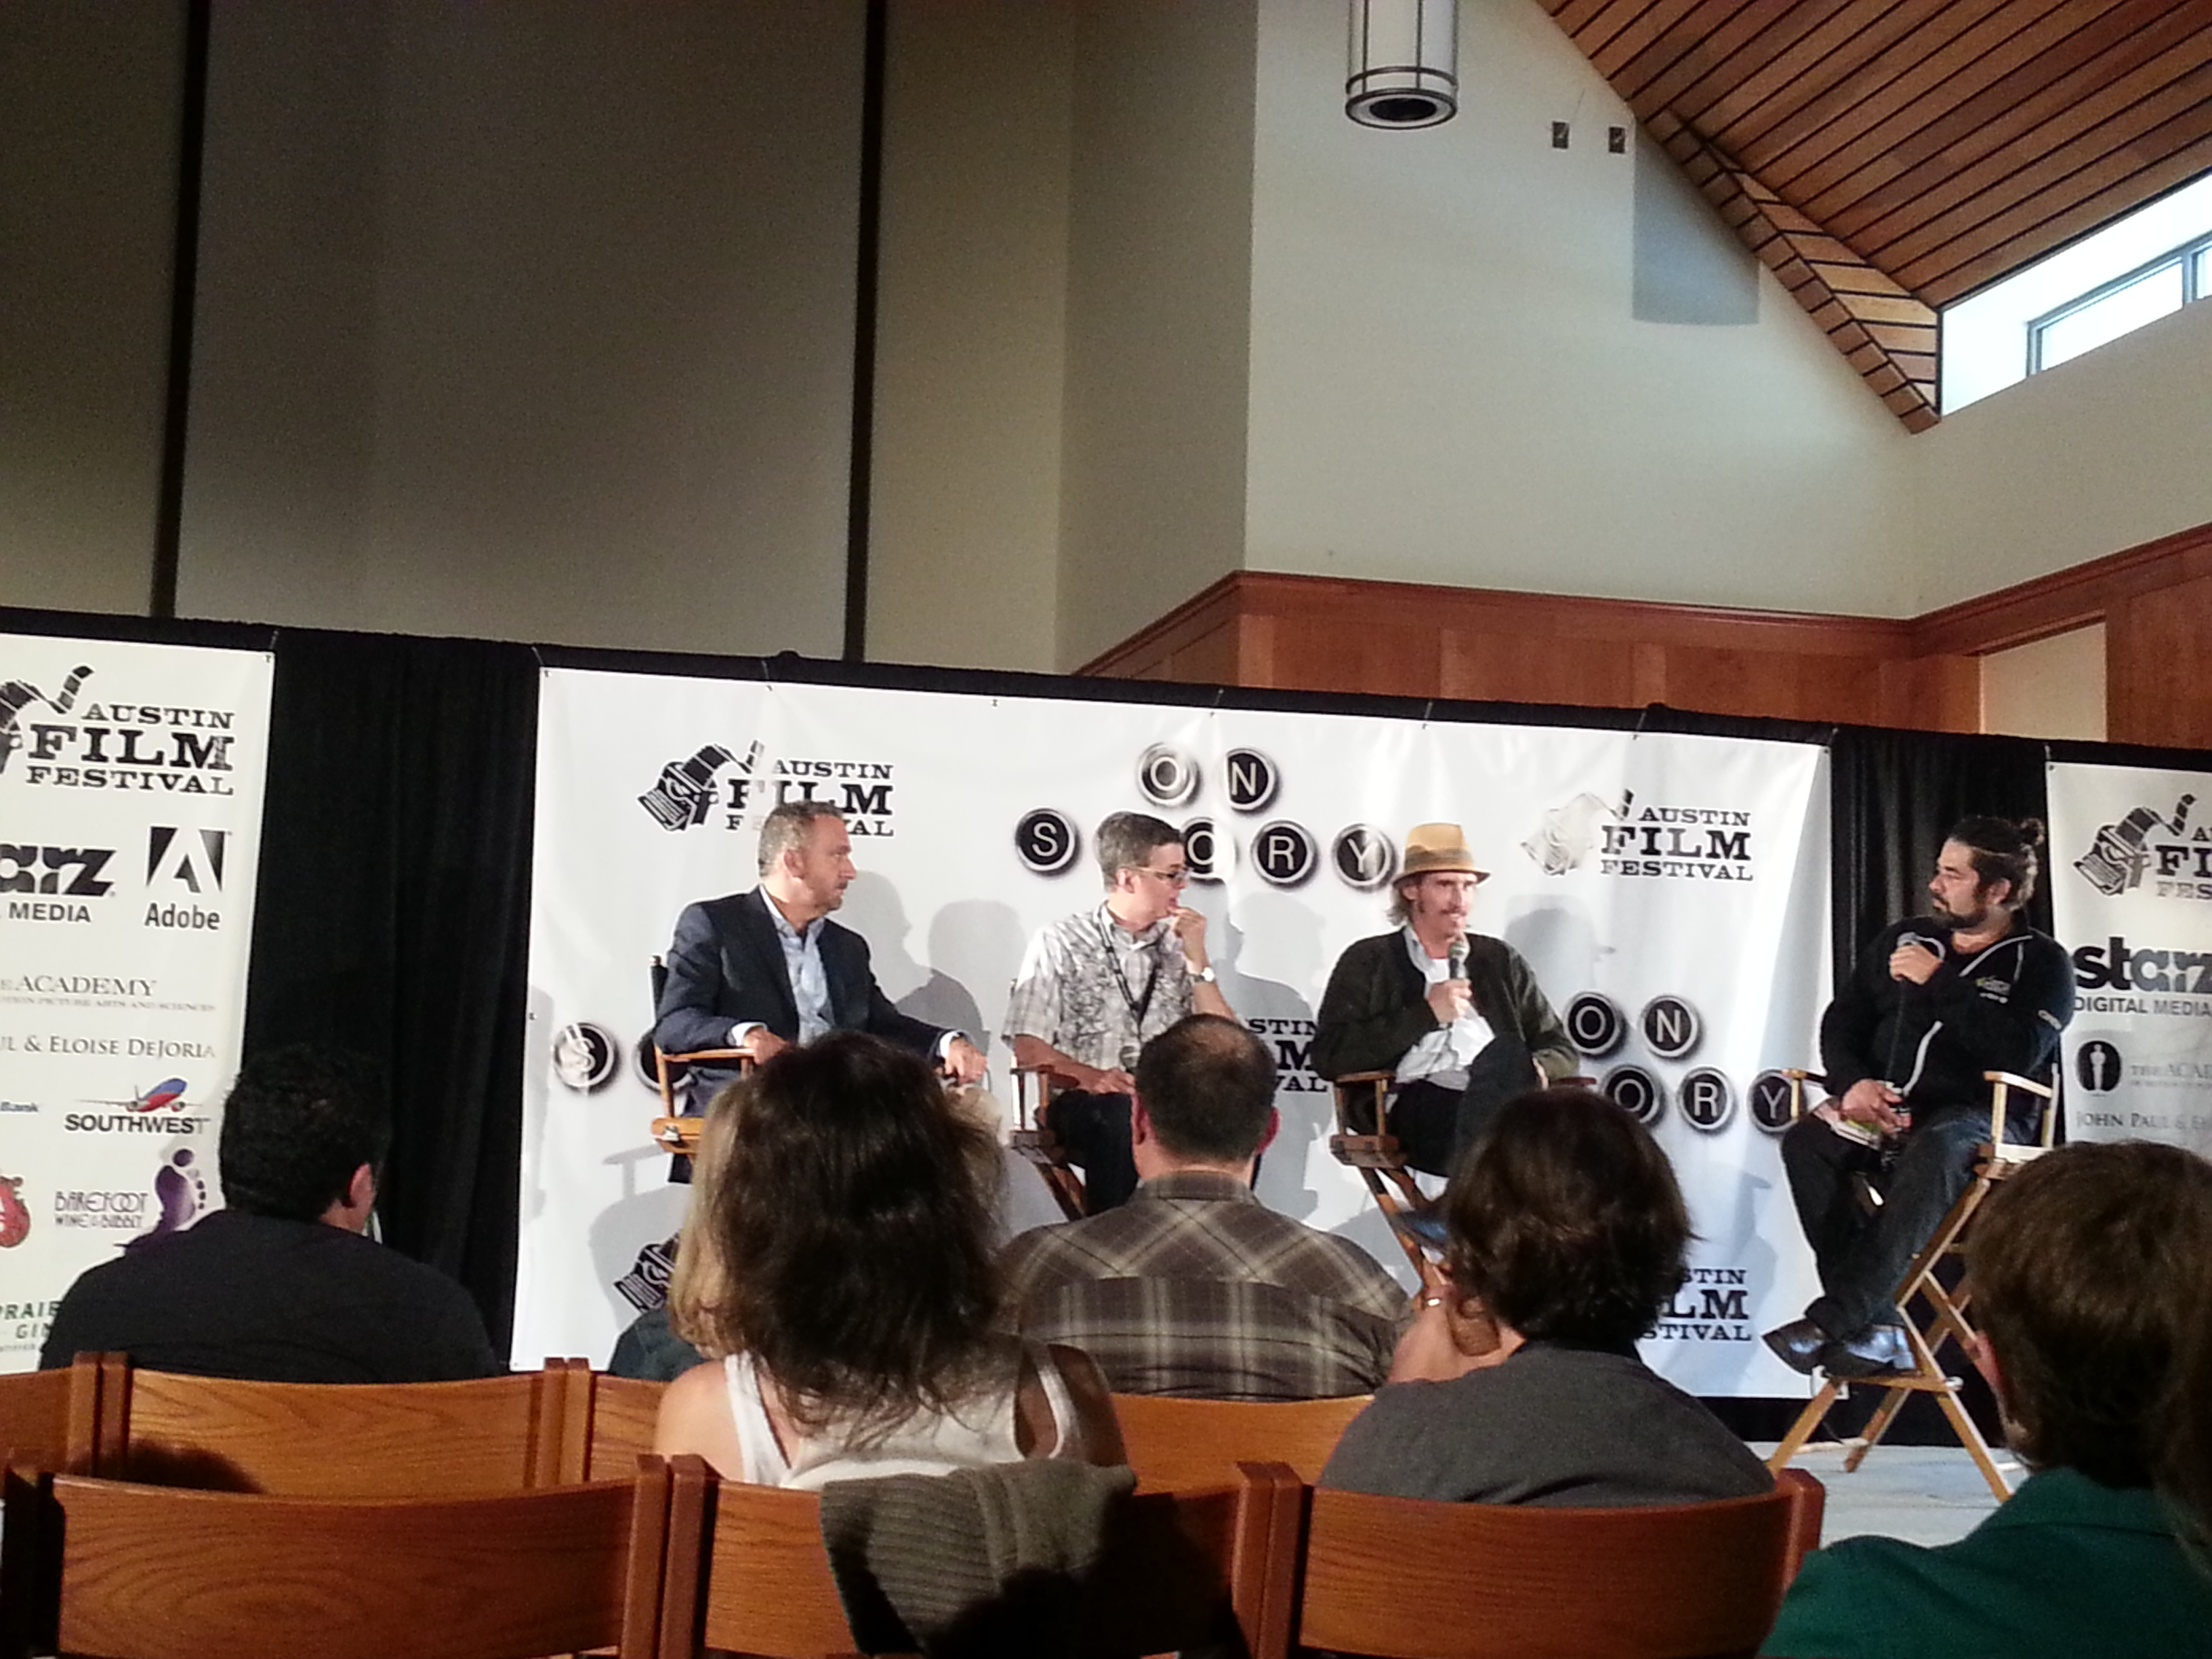 Your photo attached to your post will depend on the event. The events and panels at the Austin Film Fest were much more intimate and accessible